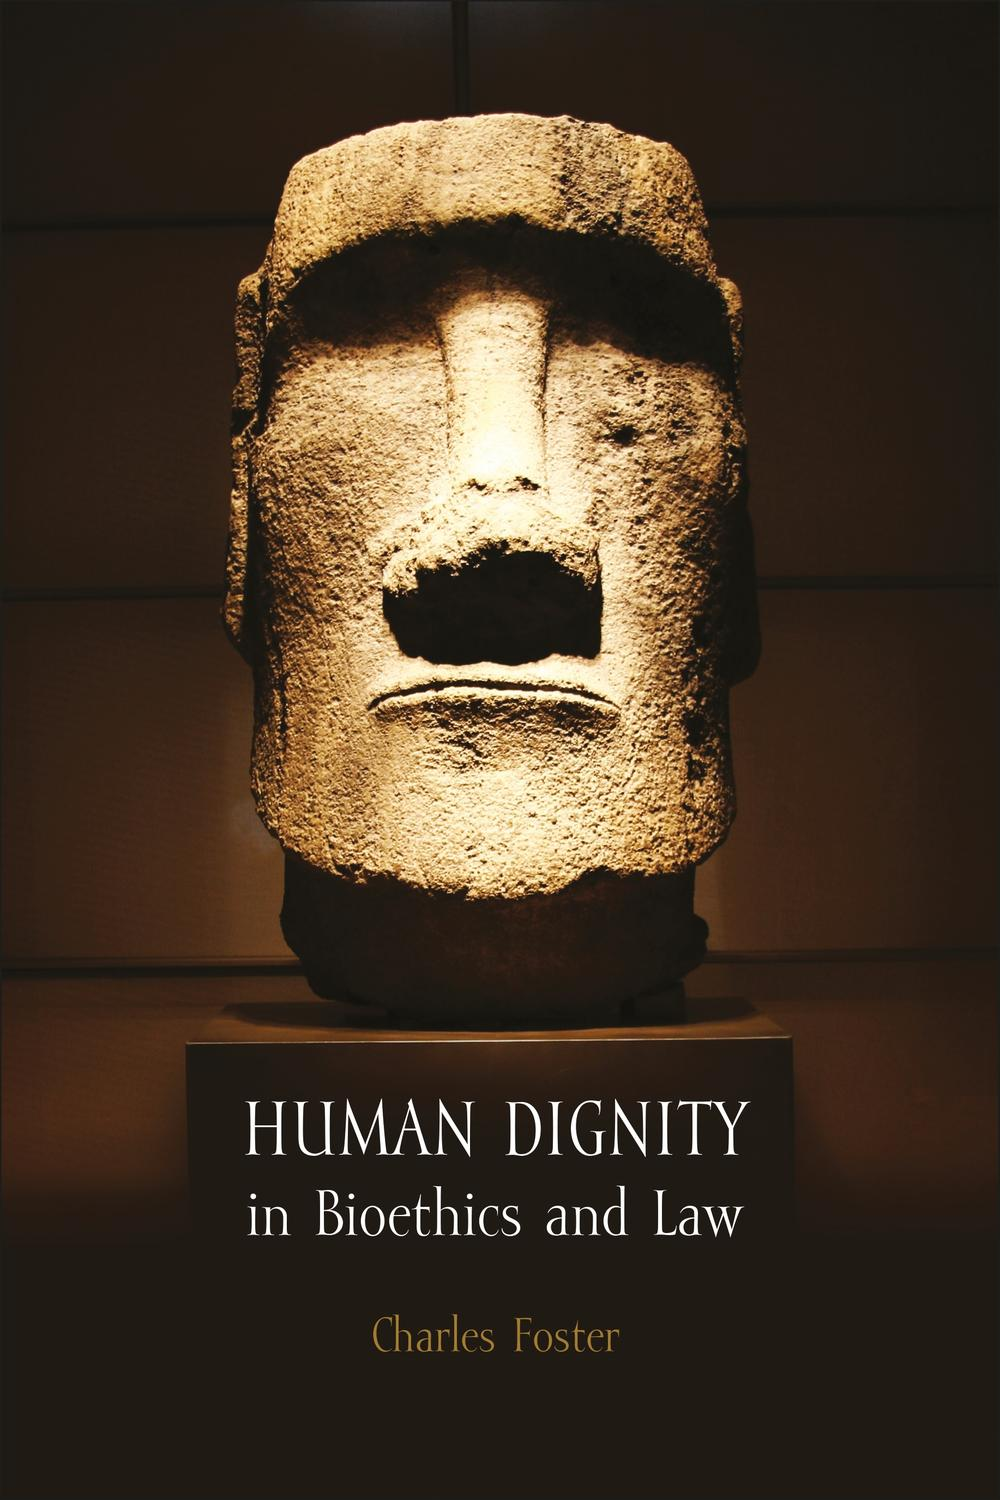 Human Dignity in Bioethics and Law by Charles Foster | PDF